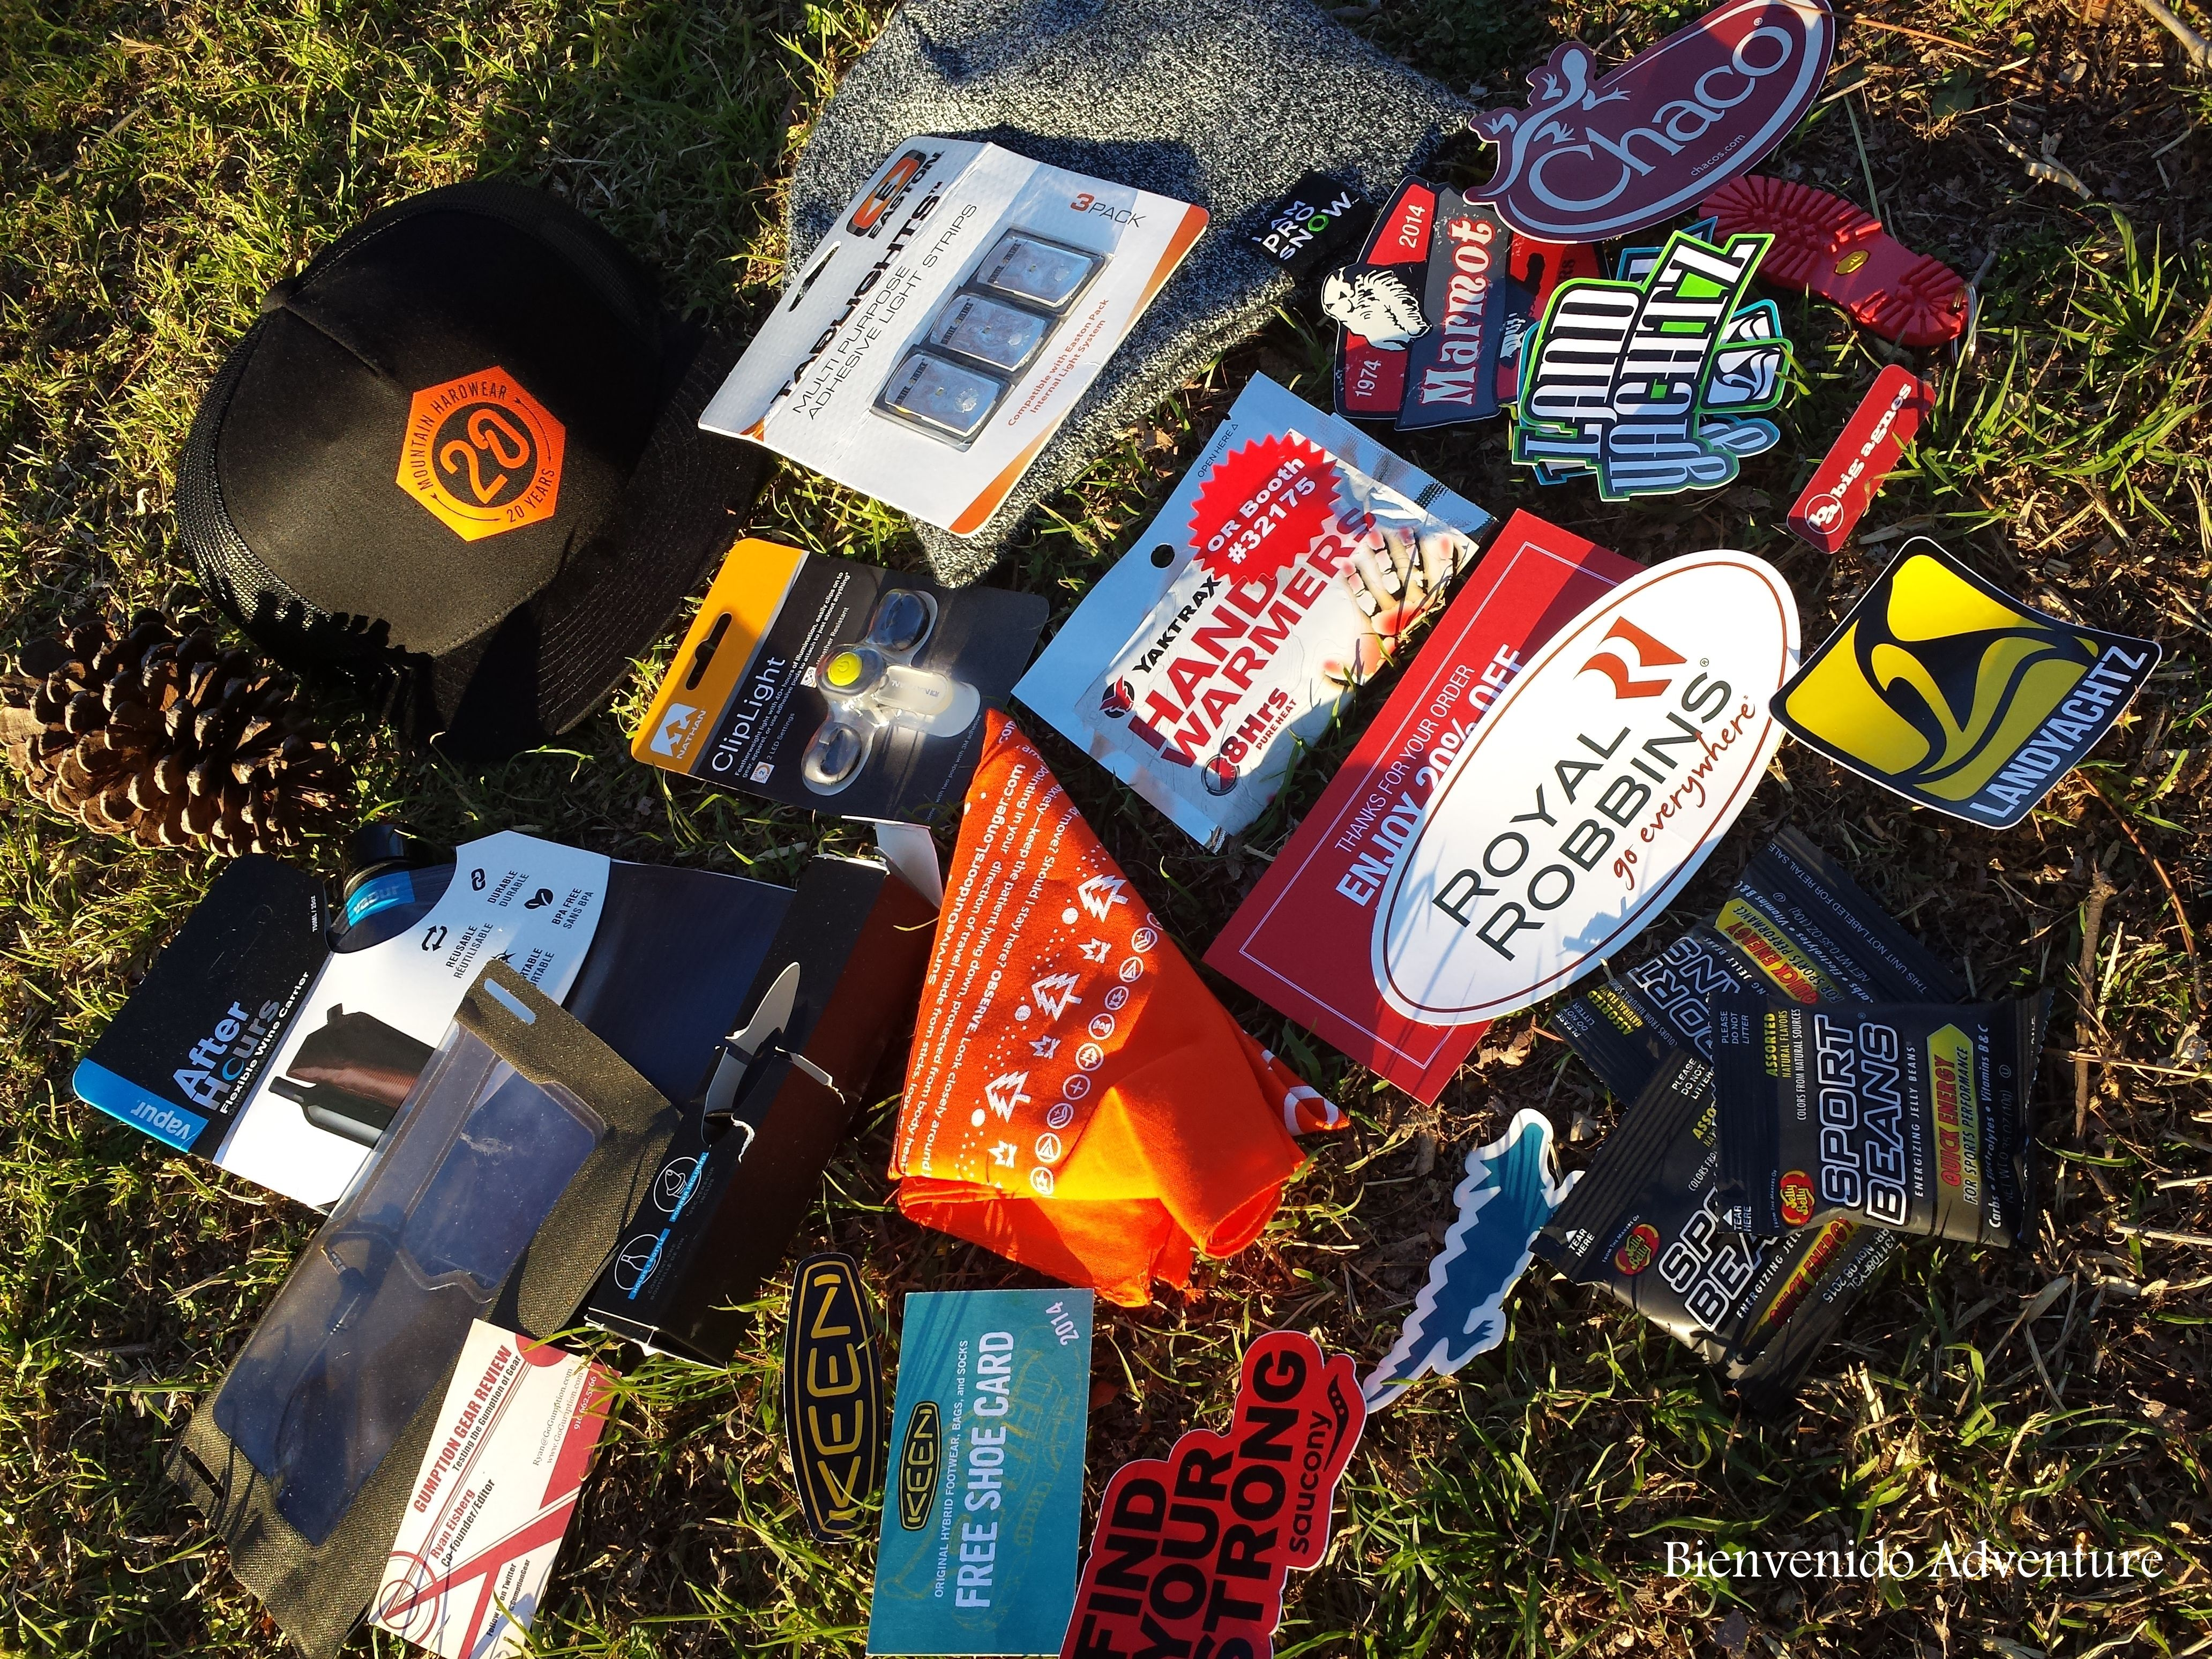 Check out the Gumption Gear Review Swag Box full of goo s from